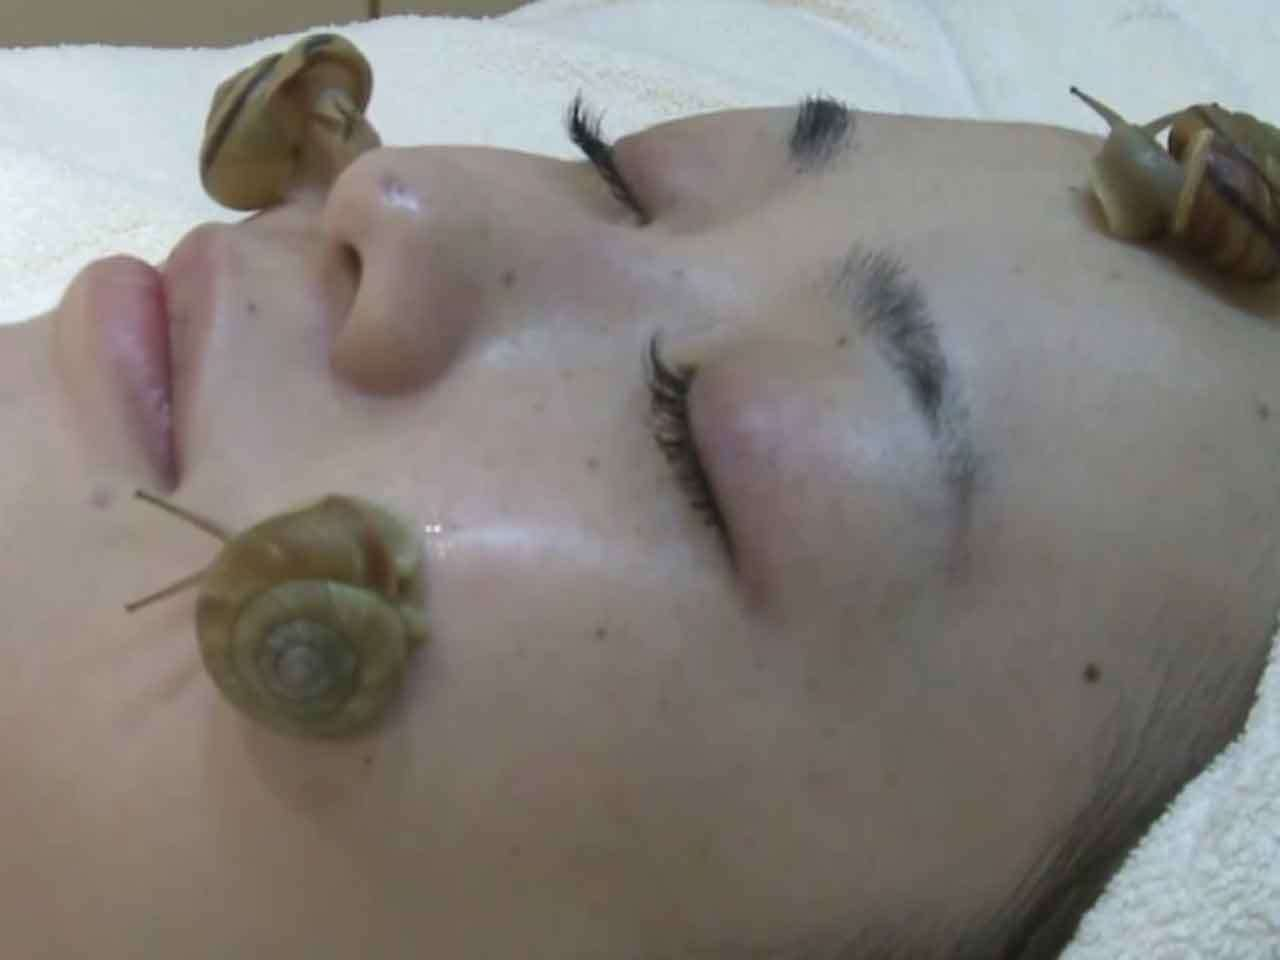 Tratamiento facial a base de caracoles. Foto: YouTube